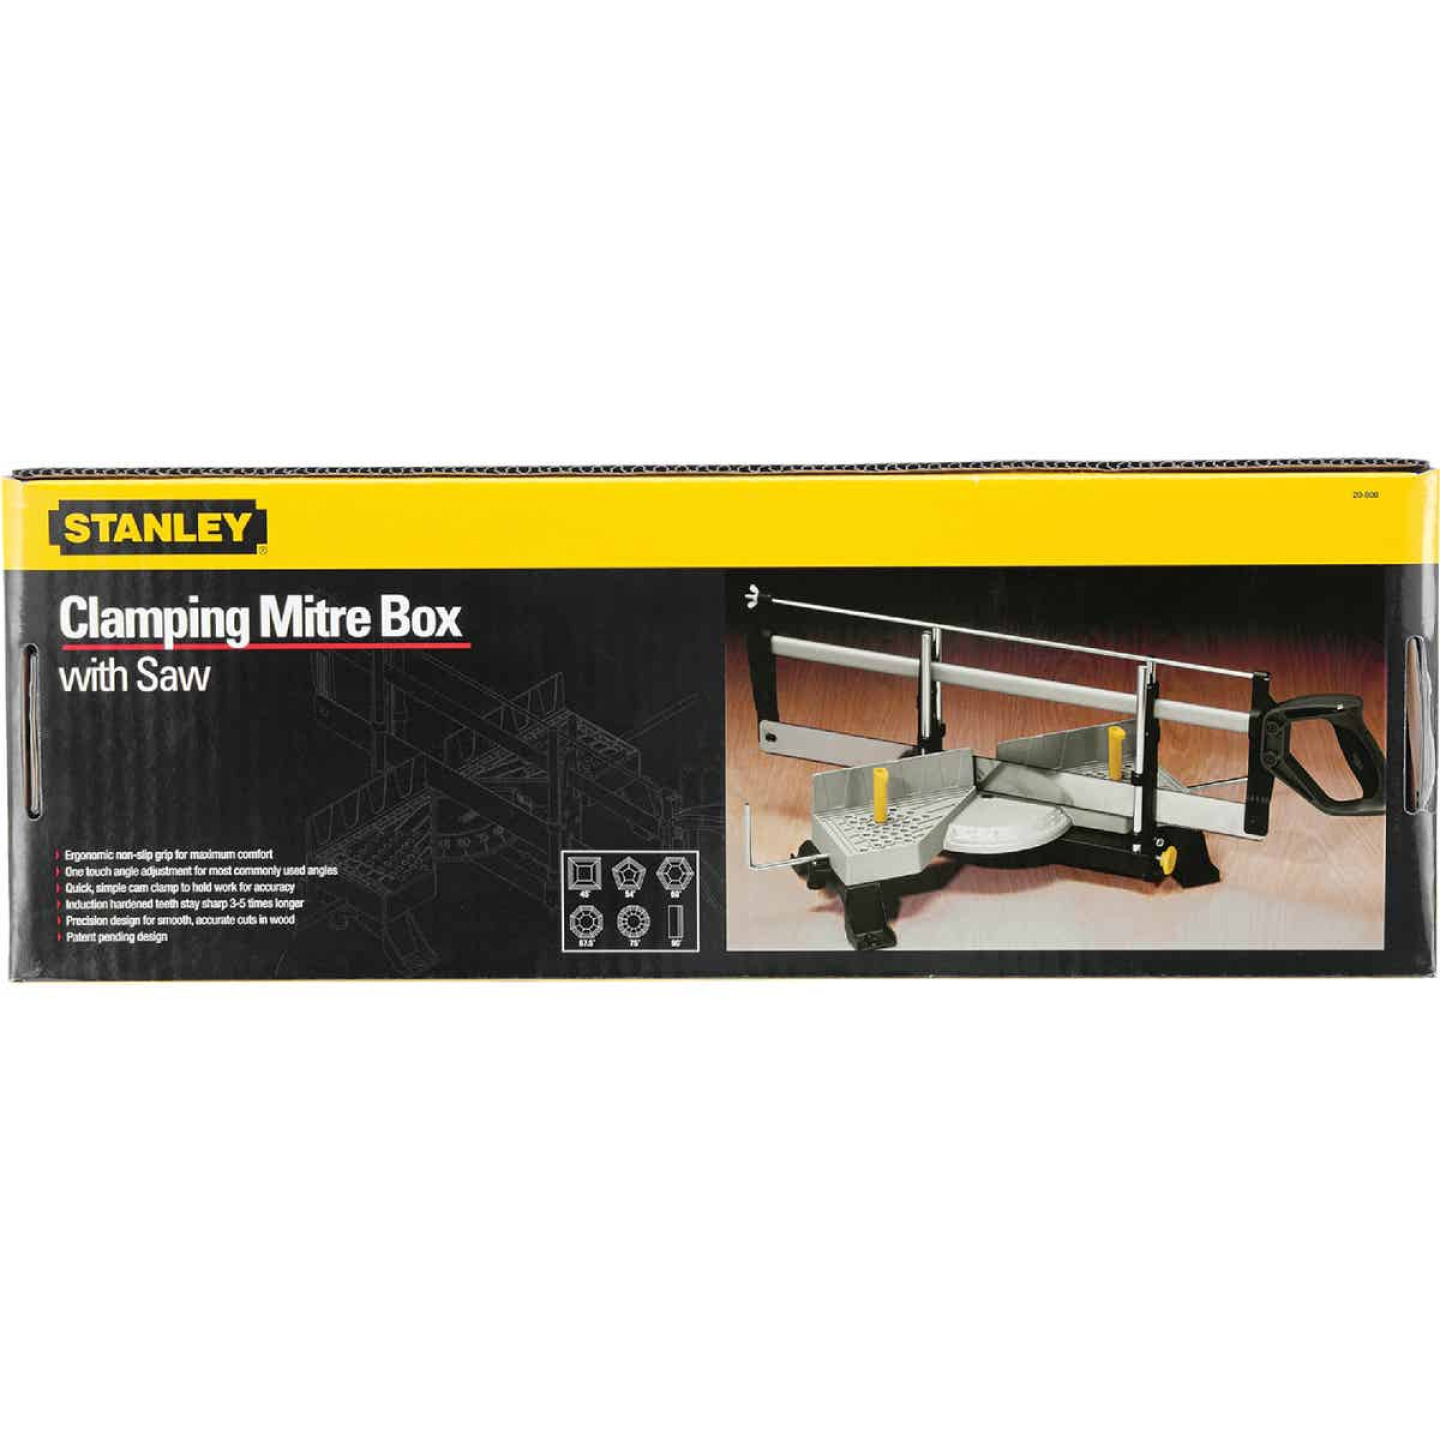 Stanley Aluminum Adjustable Angle Clamping Miter Box & 22 In. Saw Image 2